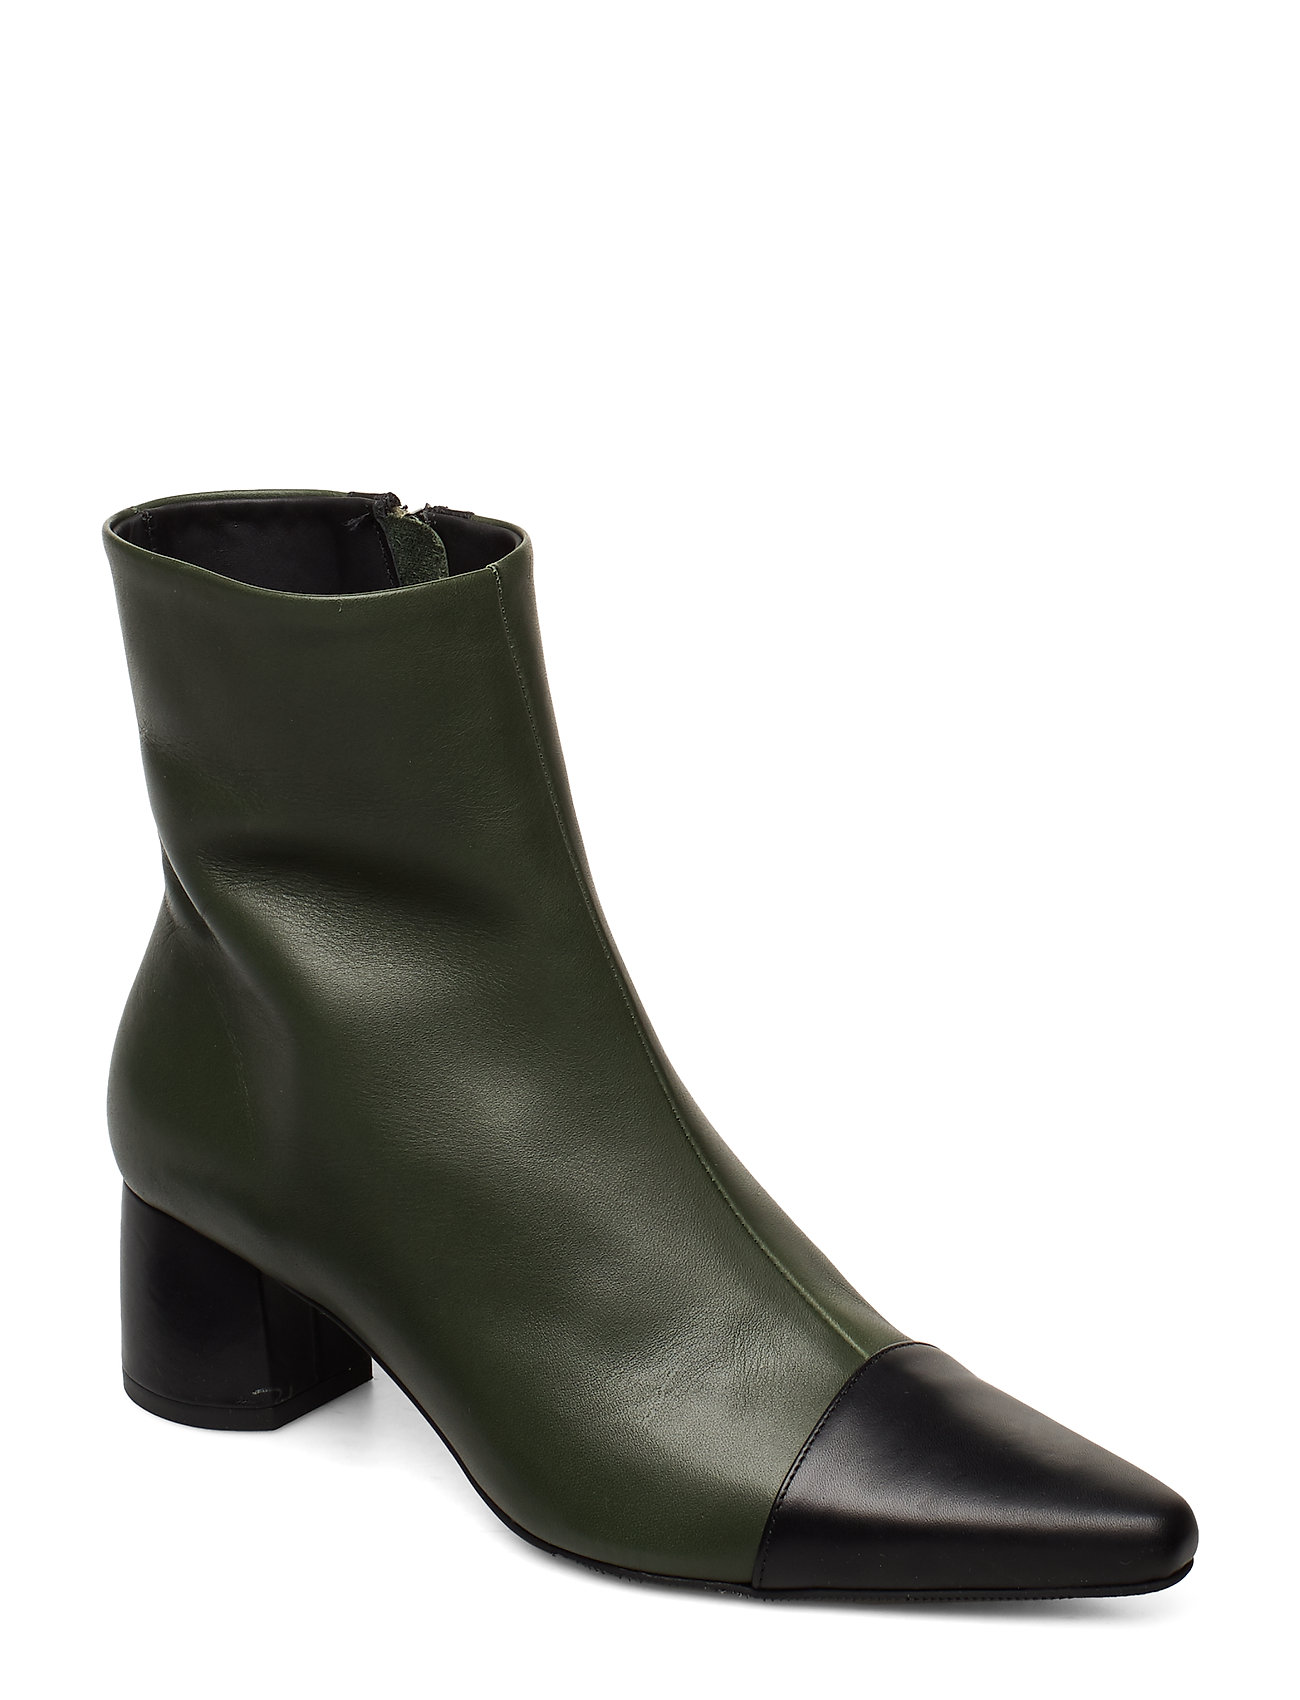 Image of Rocket Career Shoes Boots Ankle Boots Ankle Boot - Heel Grøn ANNY NORD (3406245521)